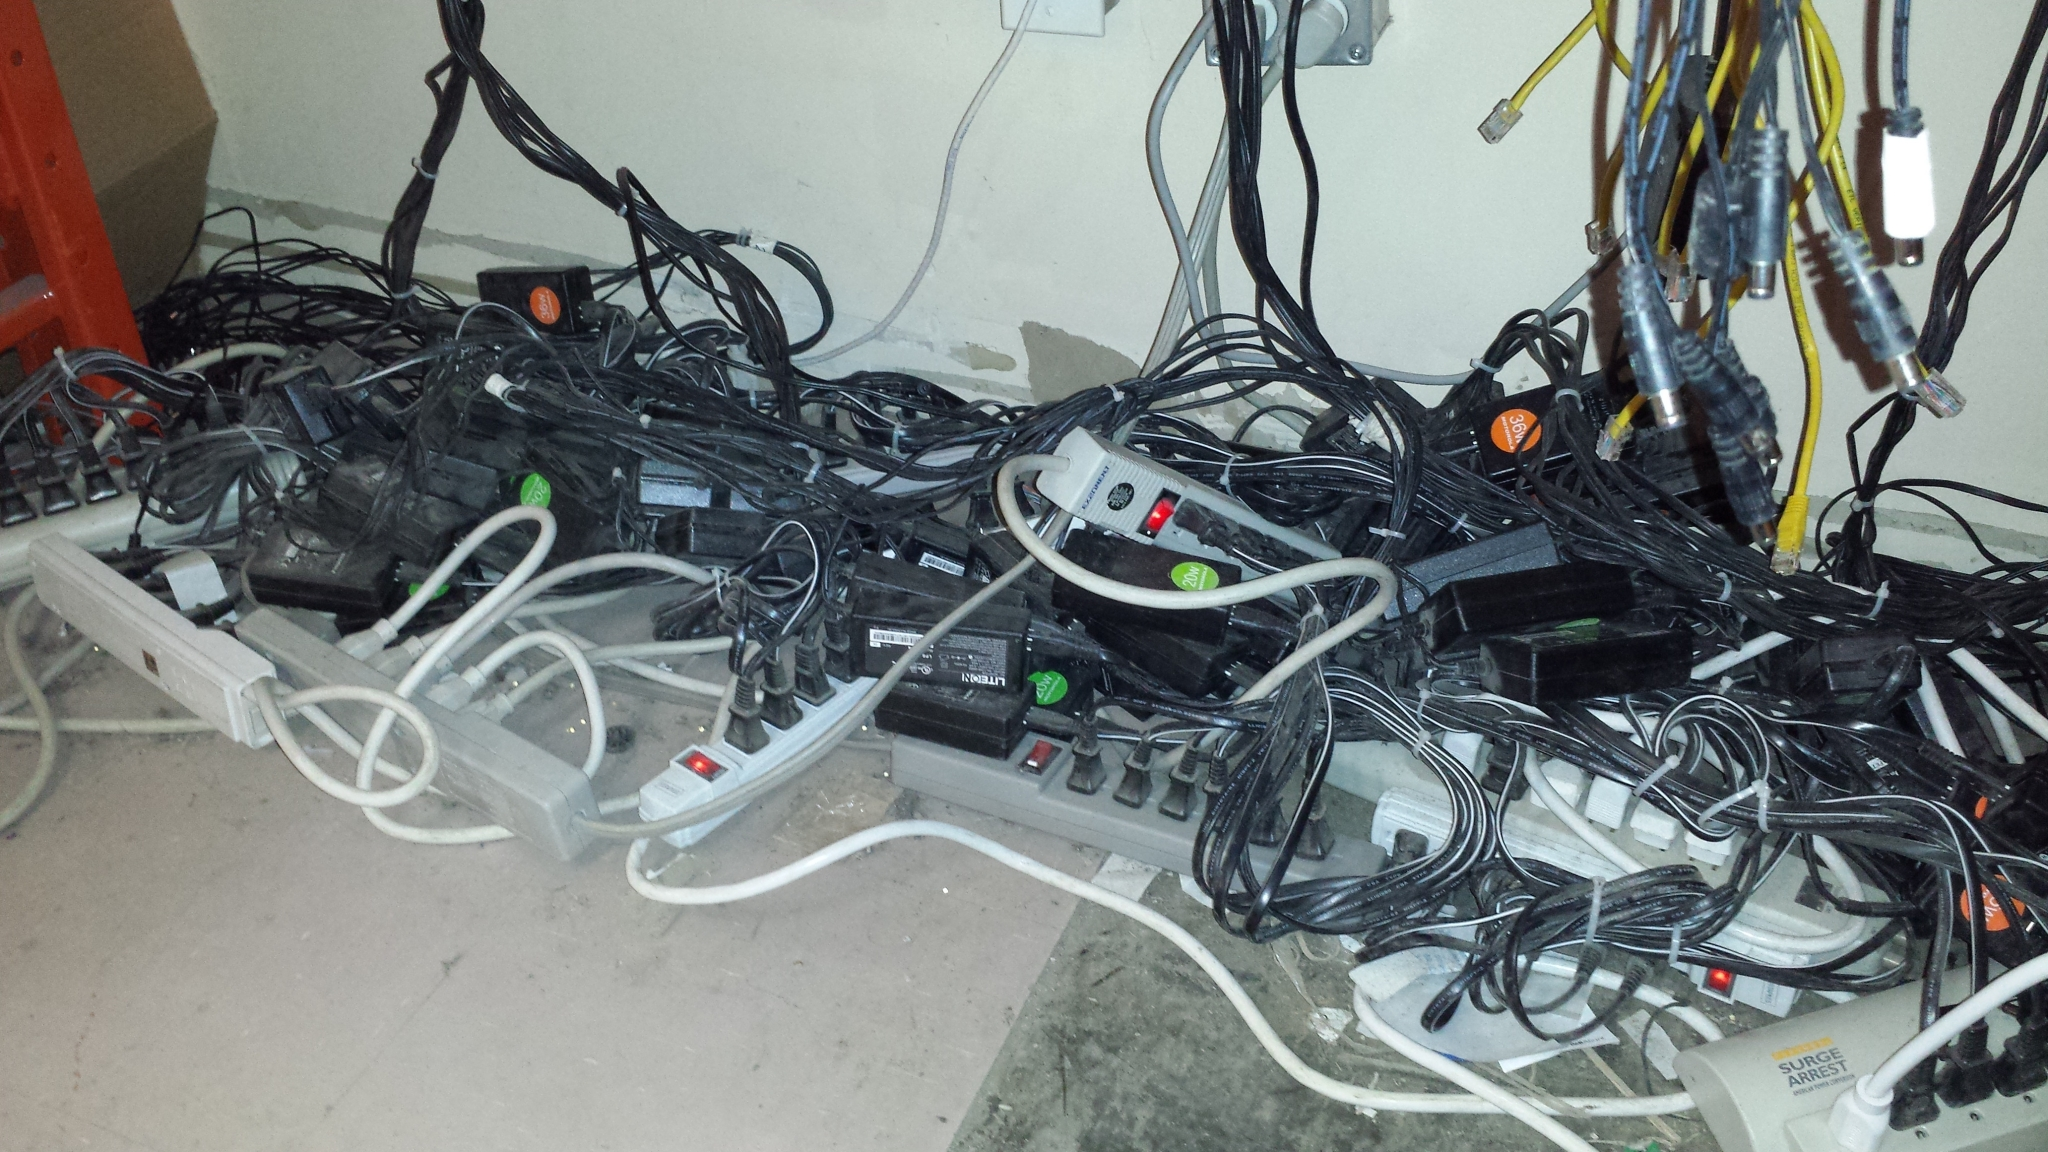 overloaded power strips